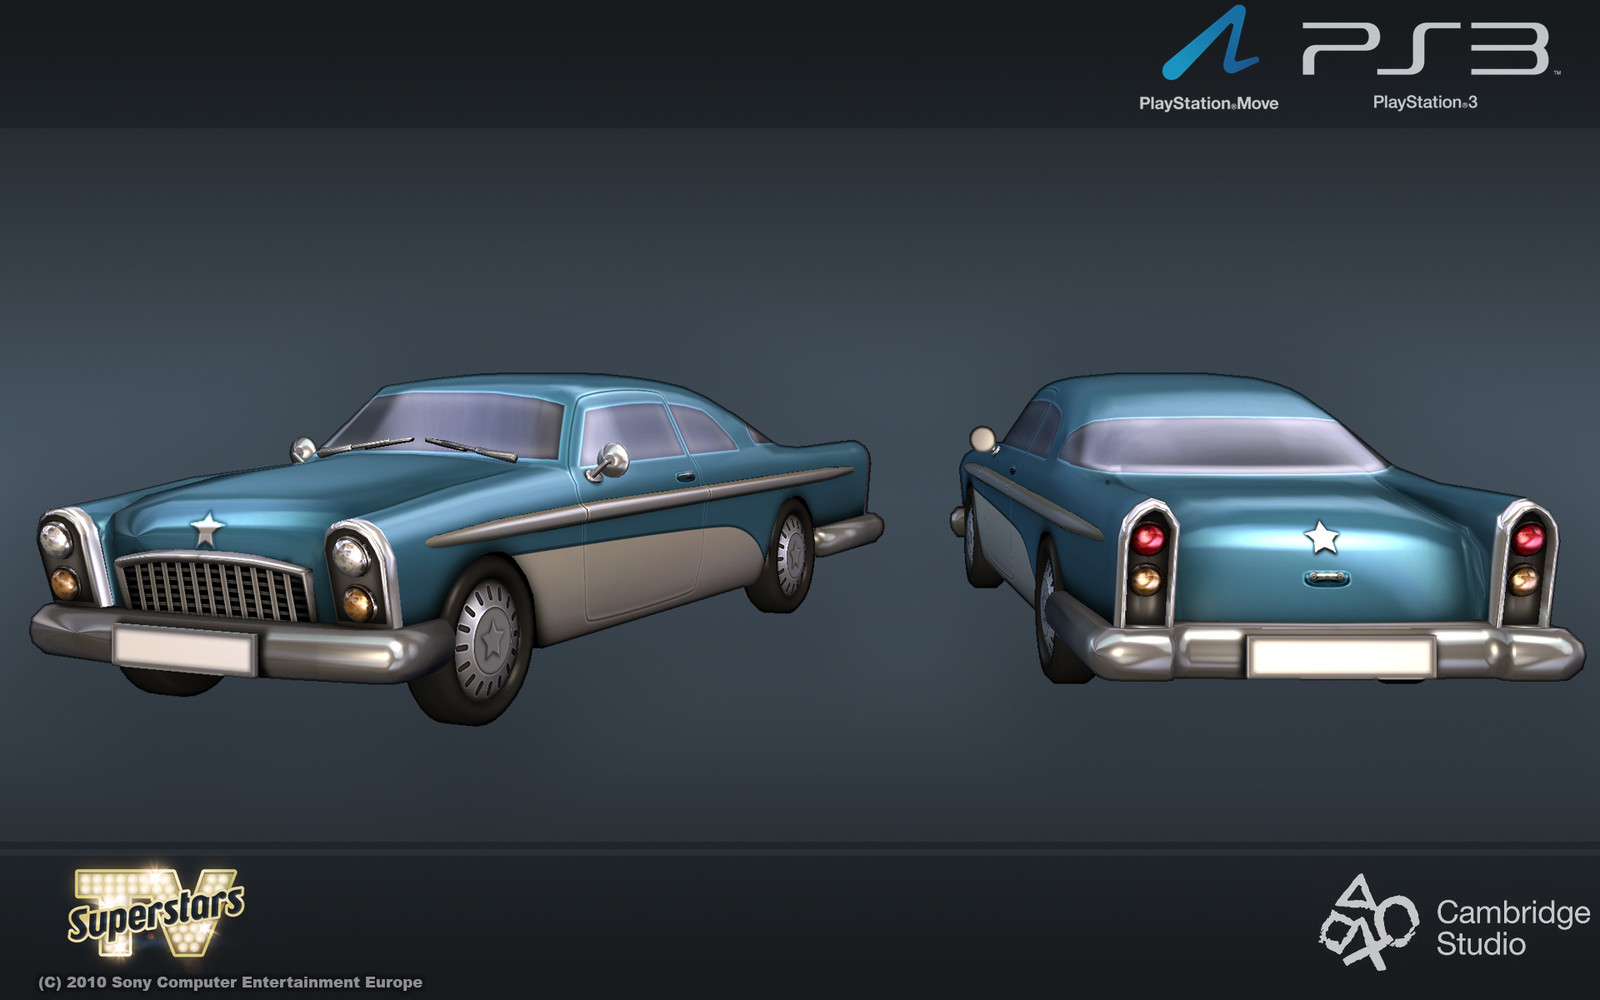 The 60's American style car that was a prize for successful players.